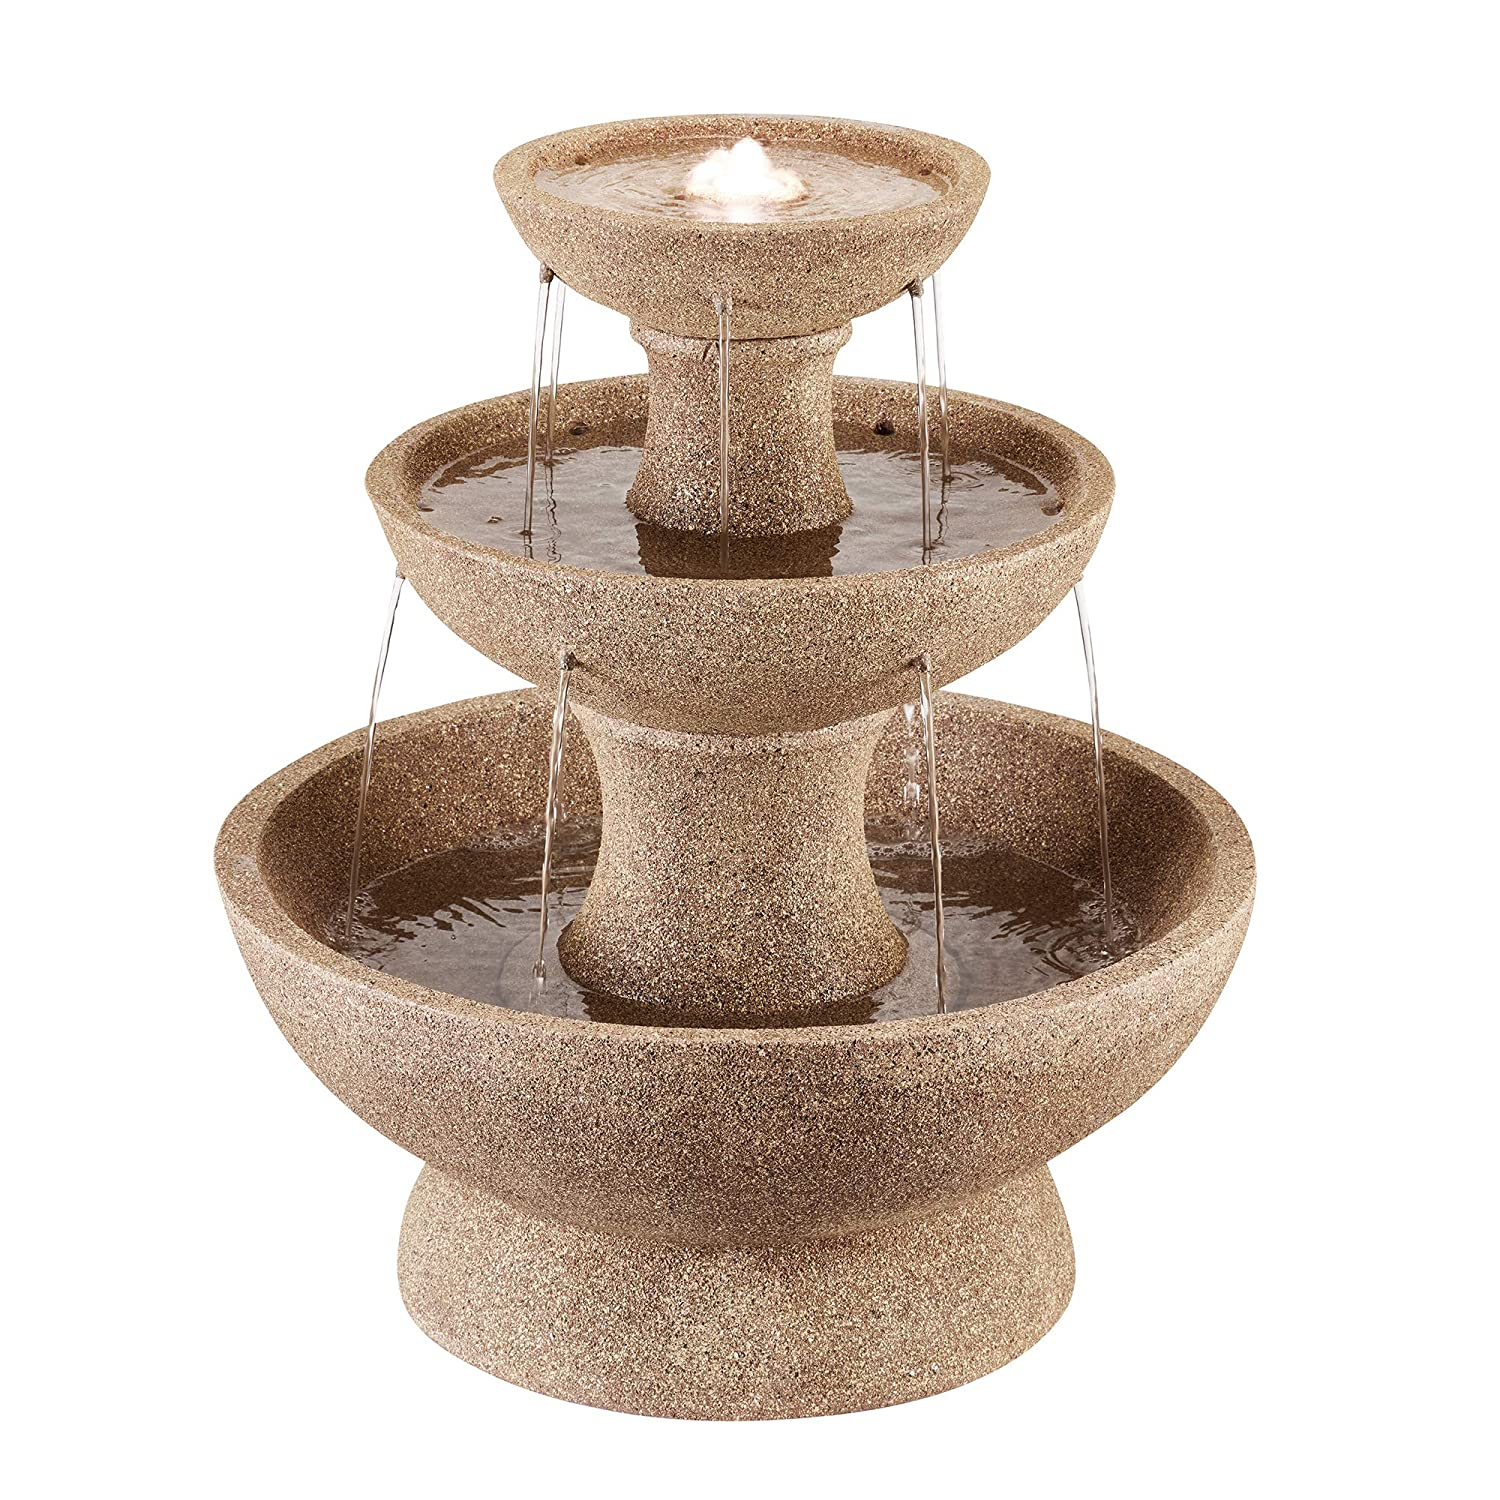 Serenity Three-Tier LED Cascade Water Feature, Modern, Self-Contained for Garden, Courtyard & Decking, Weatherproof (Height- 62.5cm)